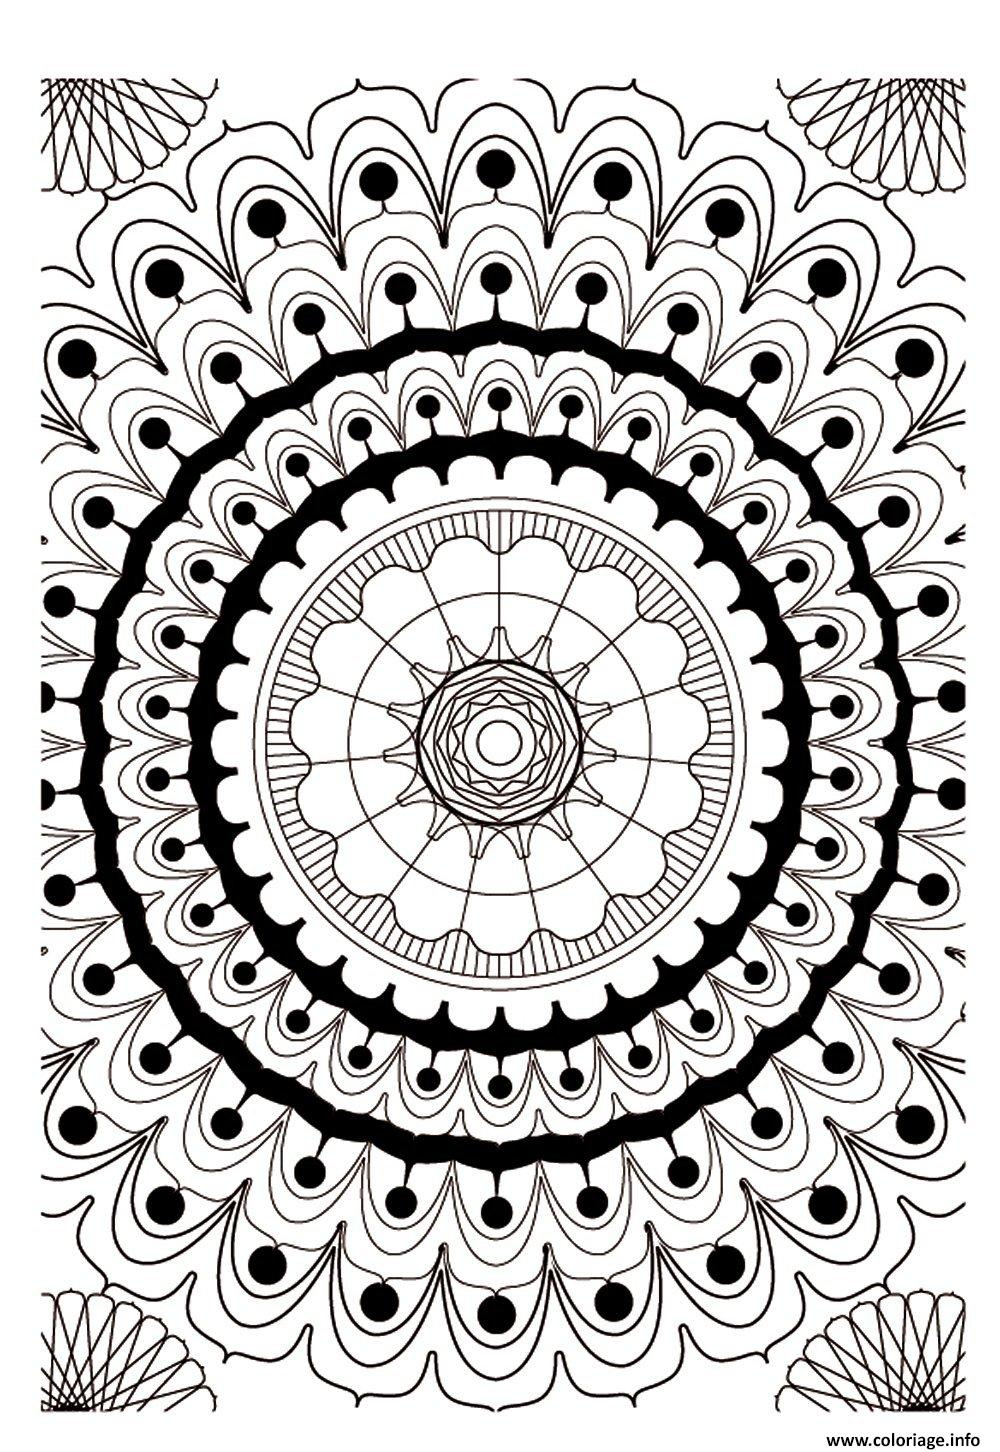 Coloriage art therapie 16 dessin - Coloriage therapie ...